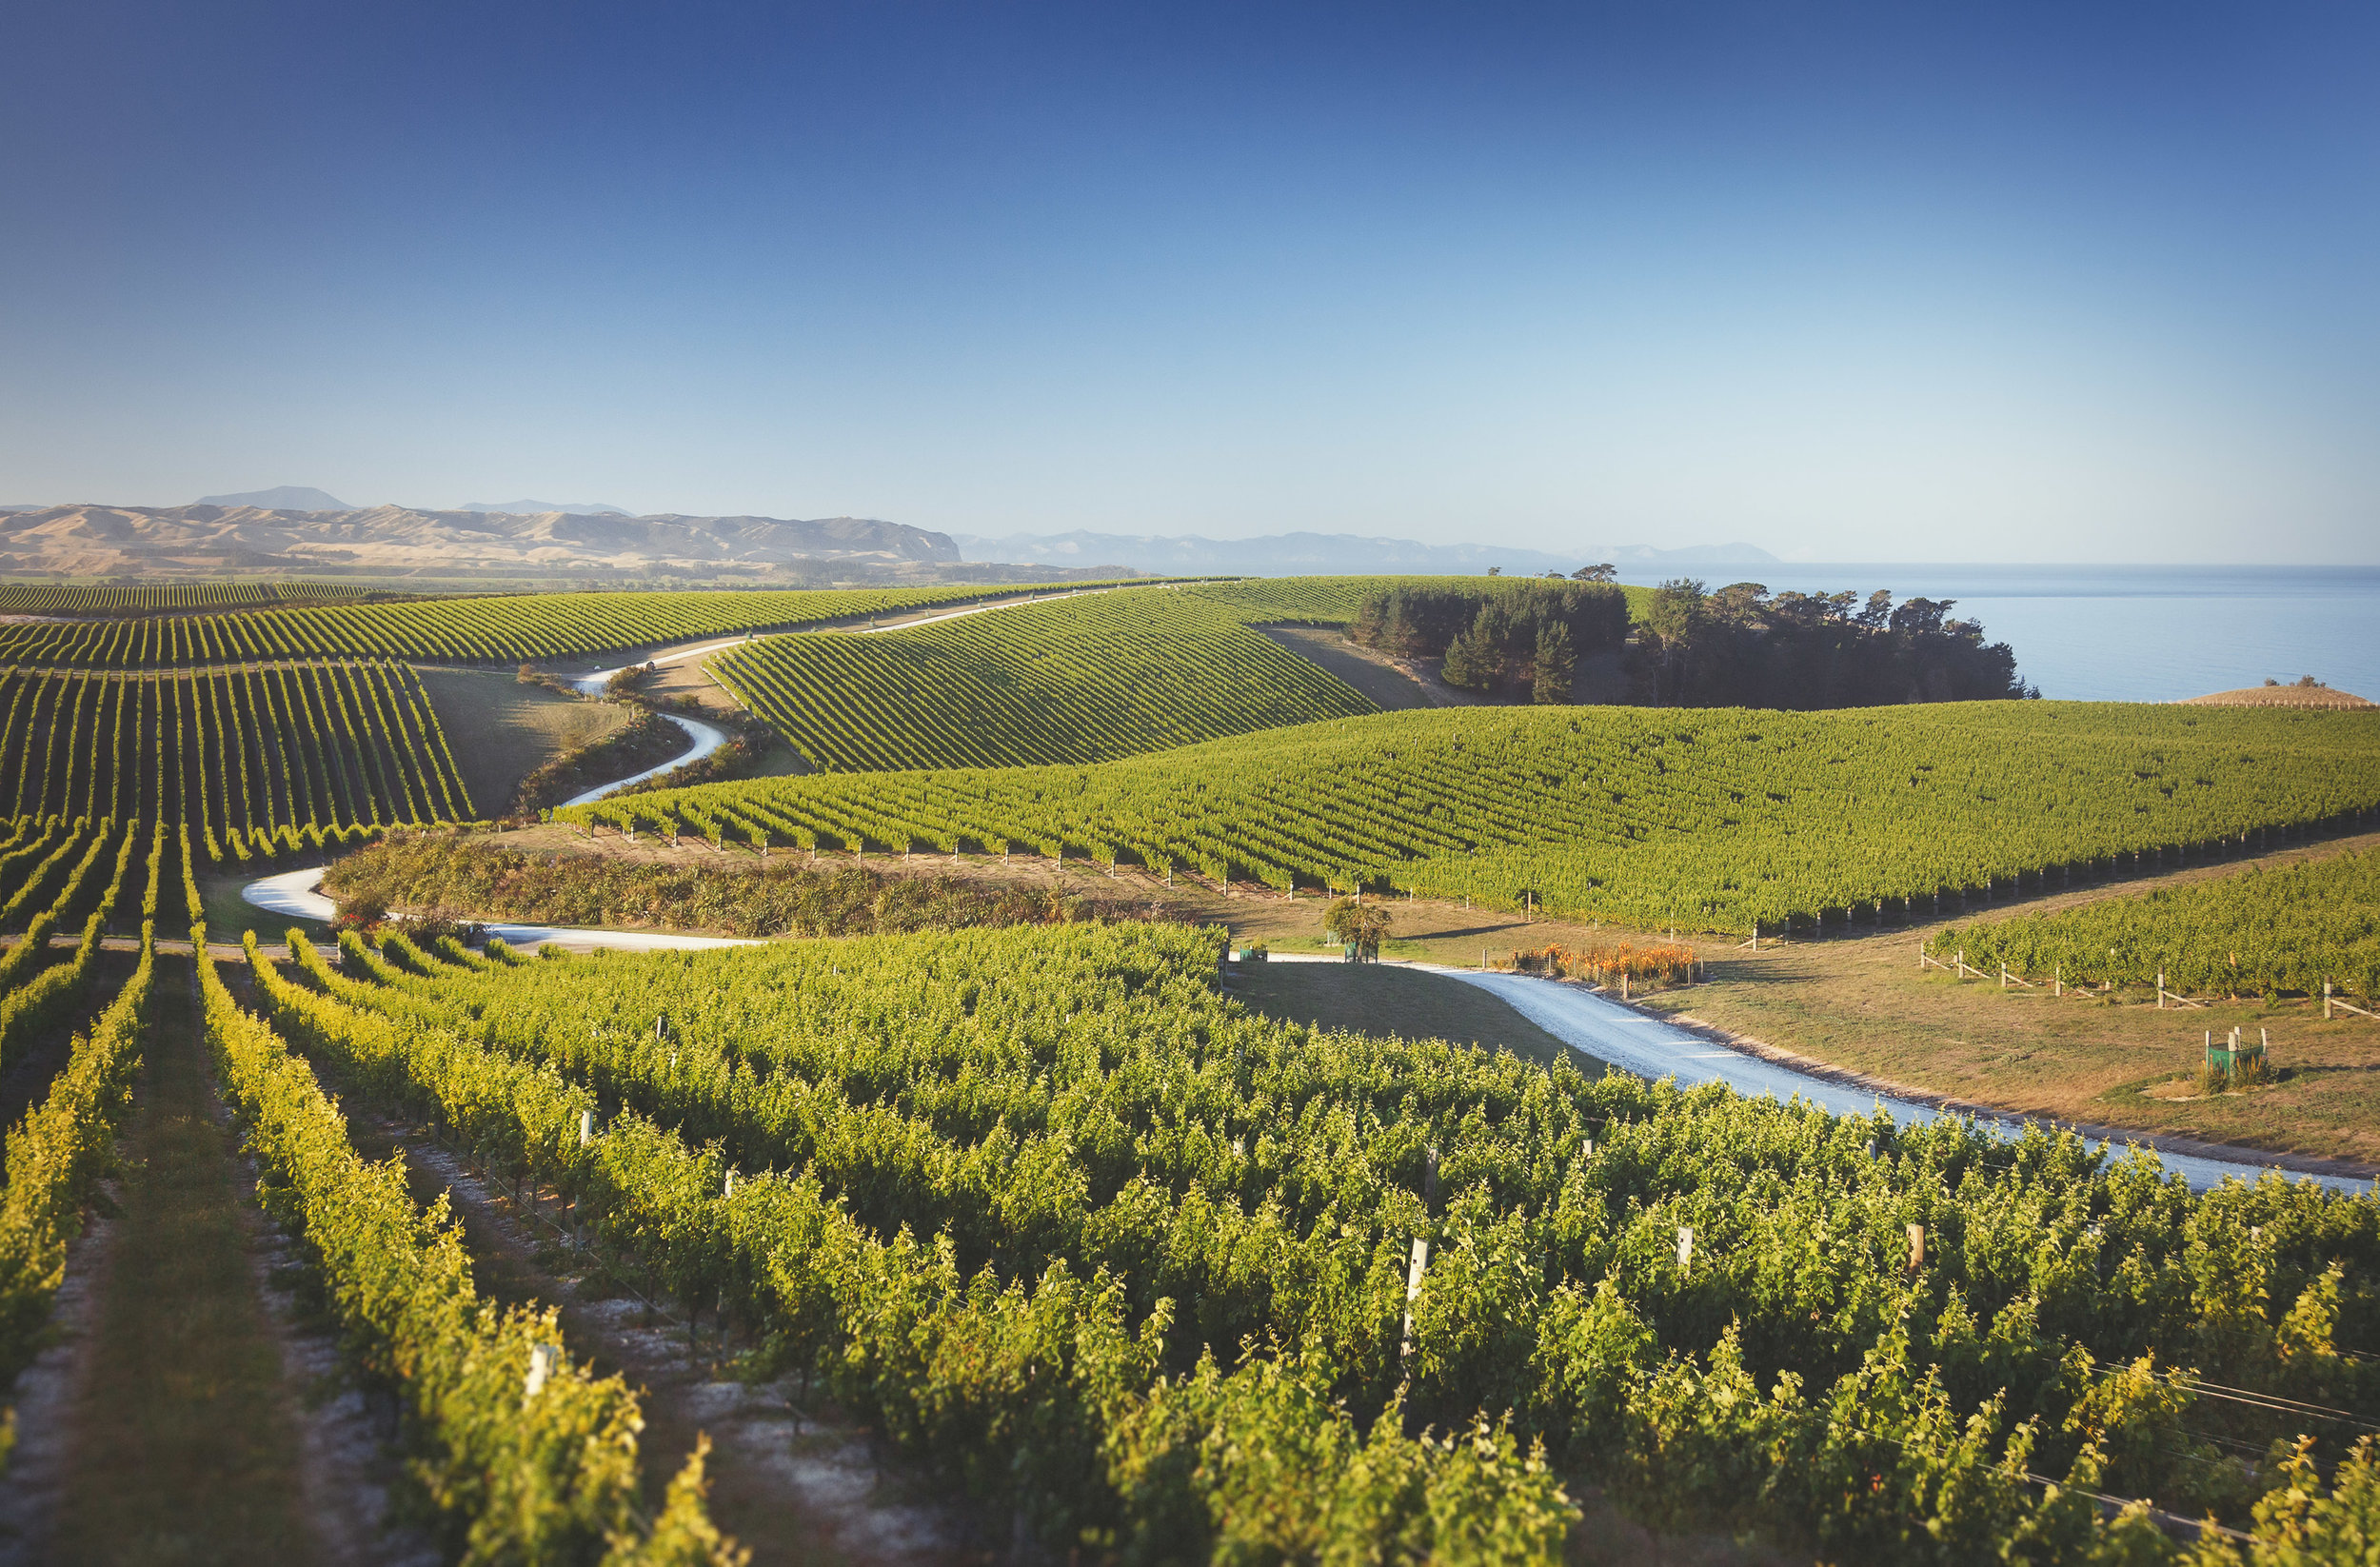 Yealands wine estate - Sea view vineyard (Image : Yealands)